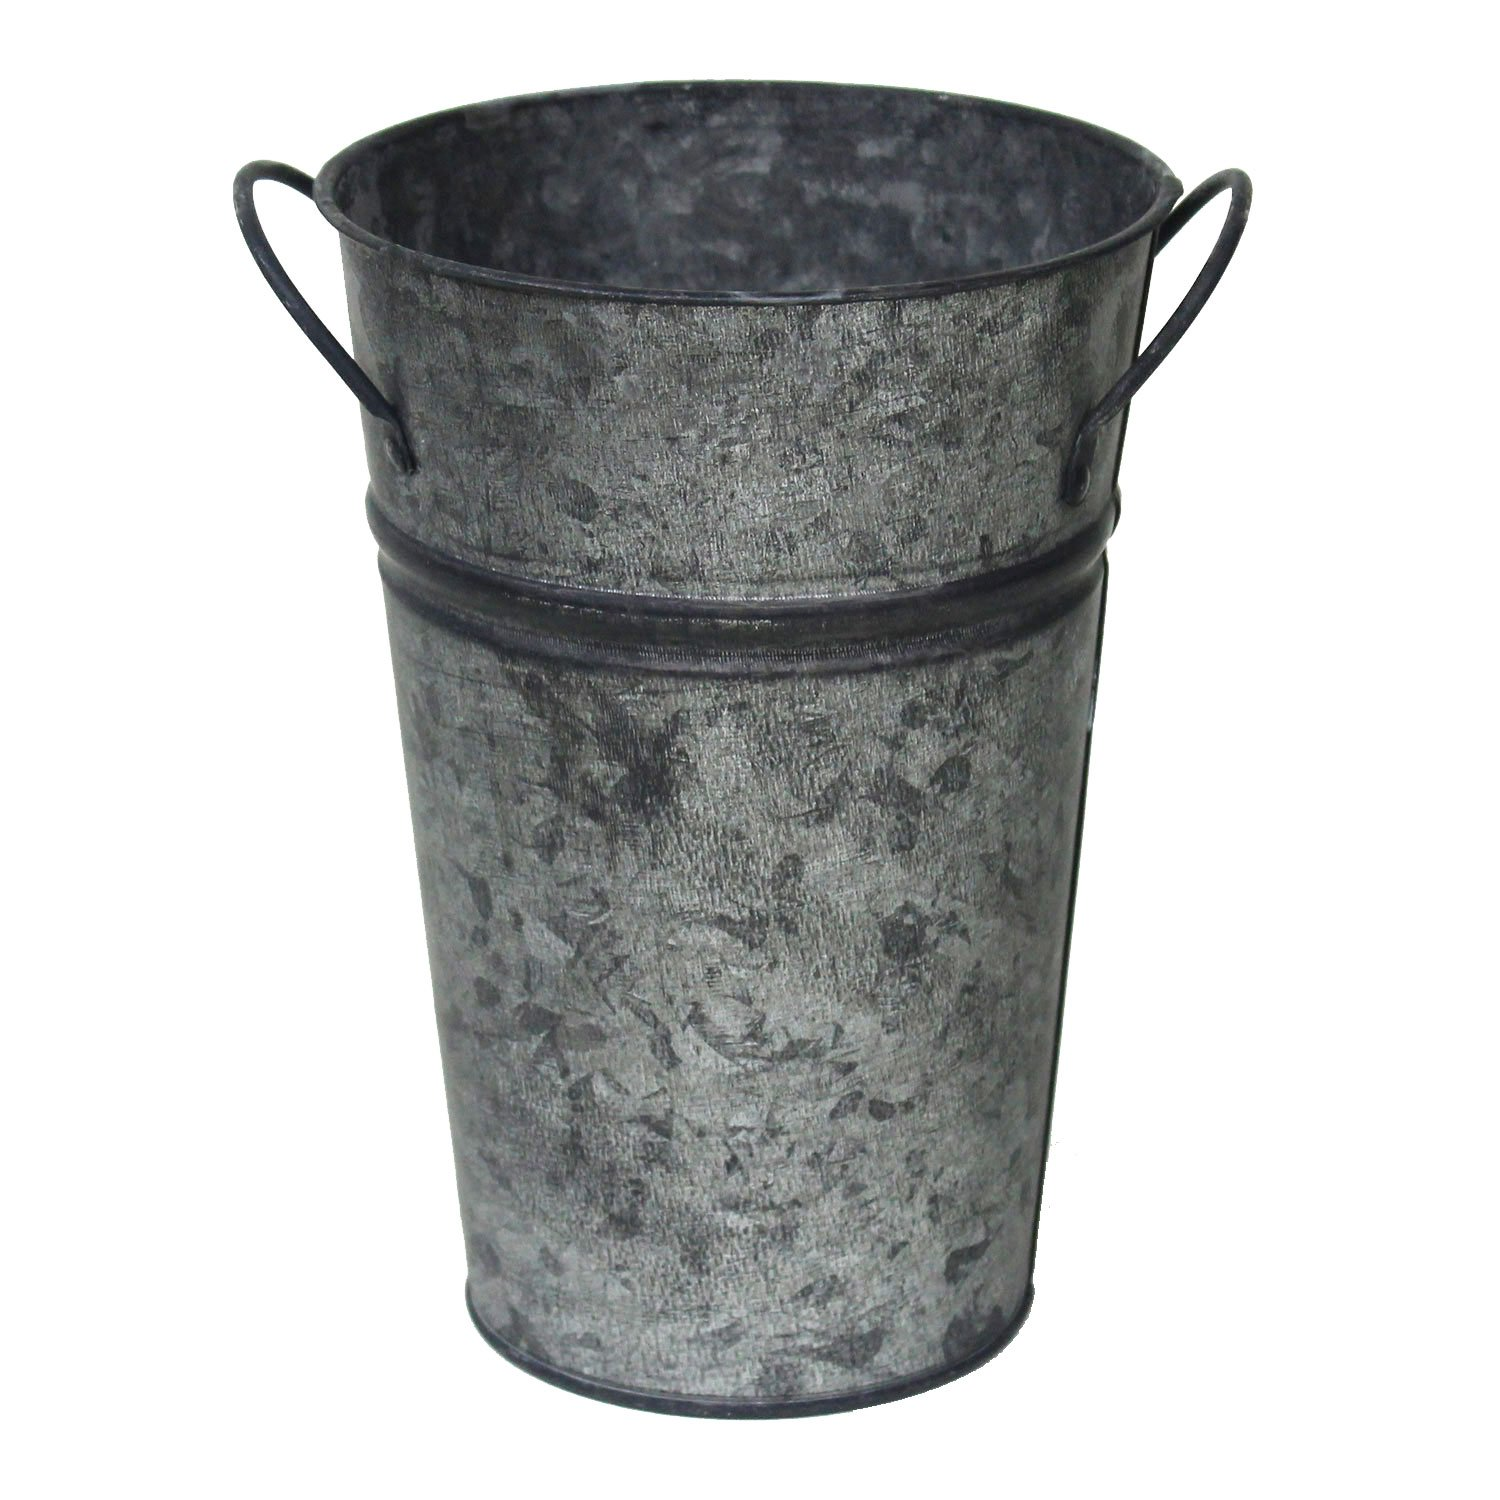 Arbor Lane Rustic Galvanized Metal Flower Vases - French Bucket - Farmhouse Style - 8 Inches - Set of 2 (Charcoal)